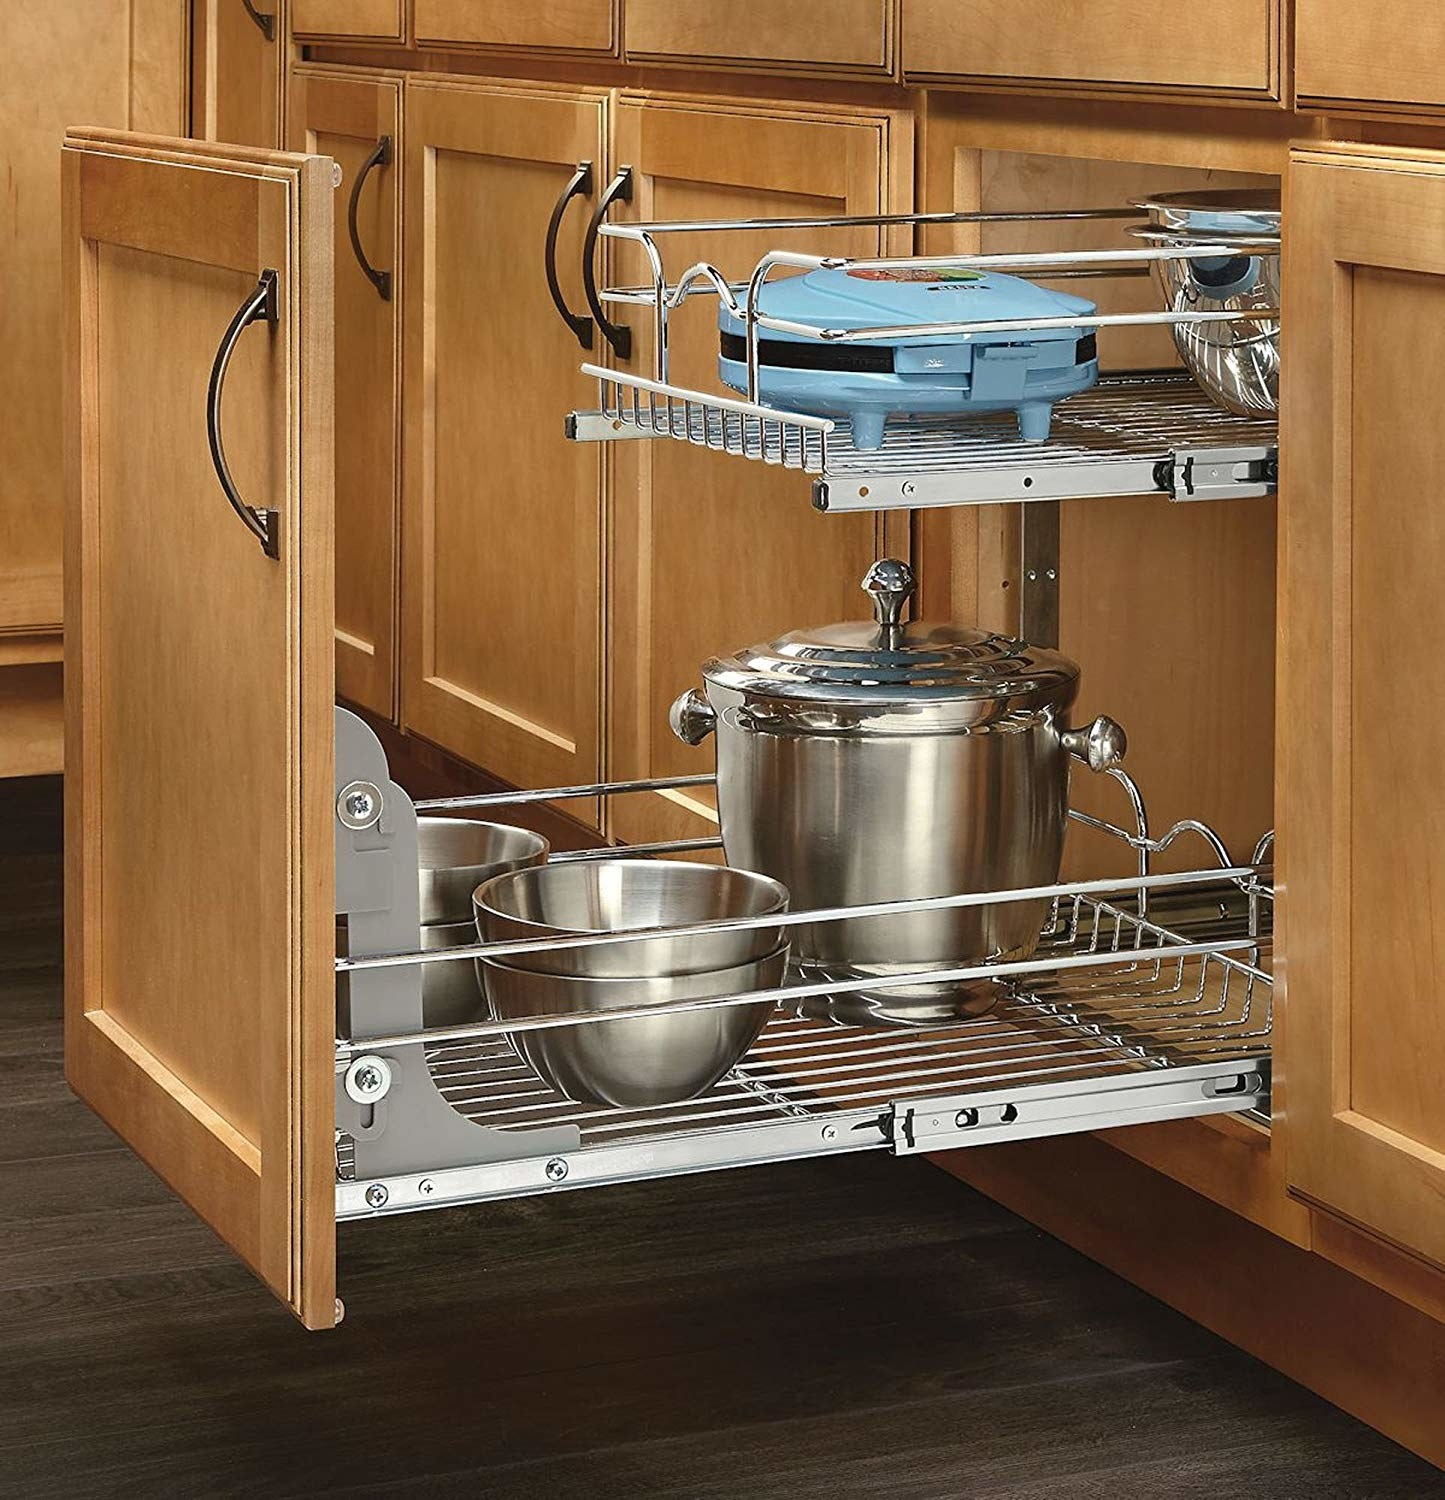 kitchen cabinet door attached to roll-out two-tier shelf with small appliances on it